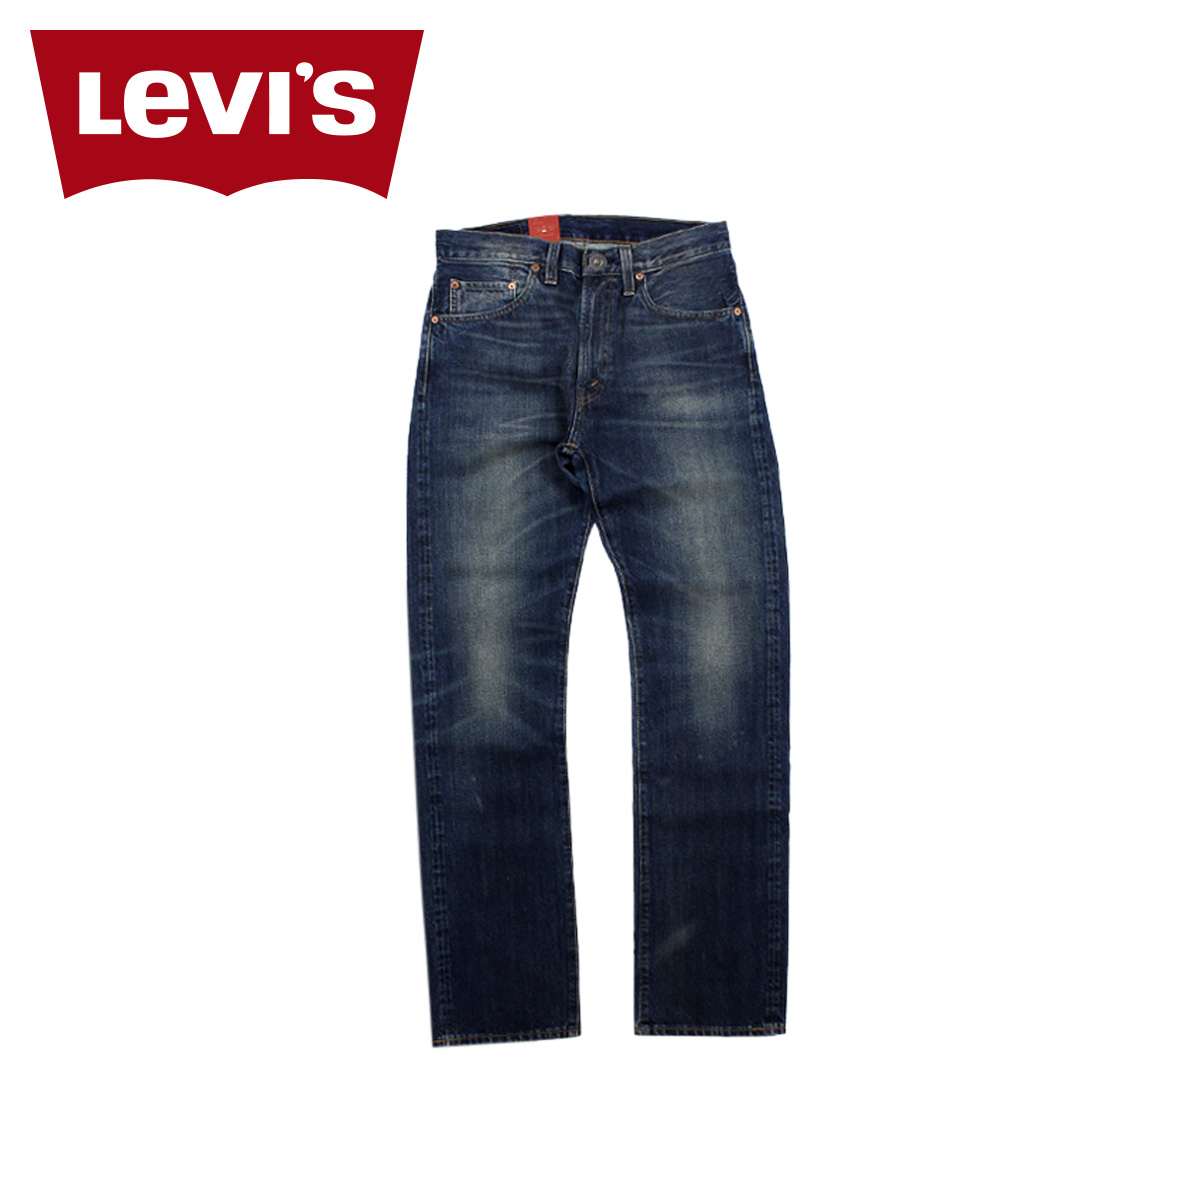 levis marketing mix